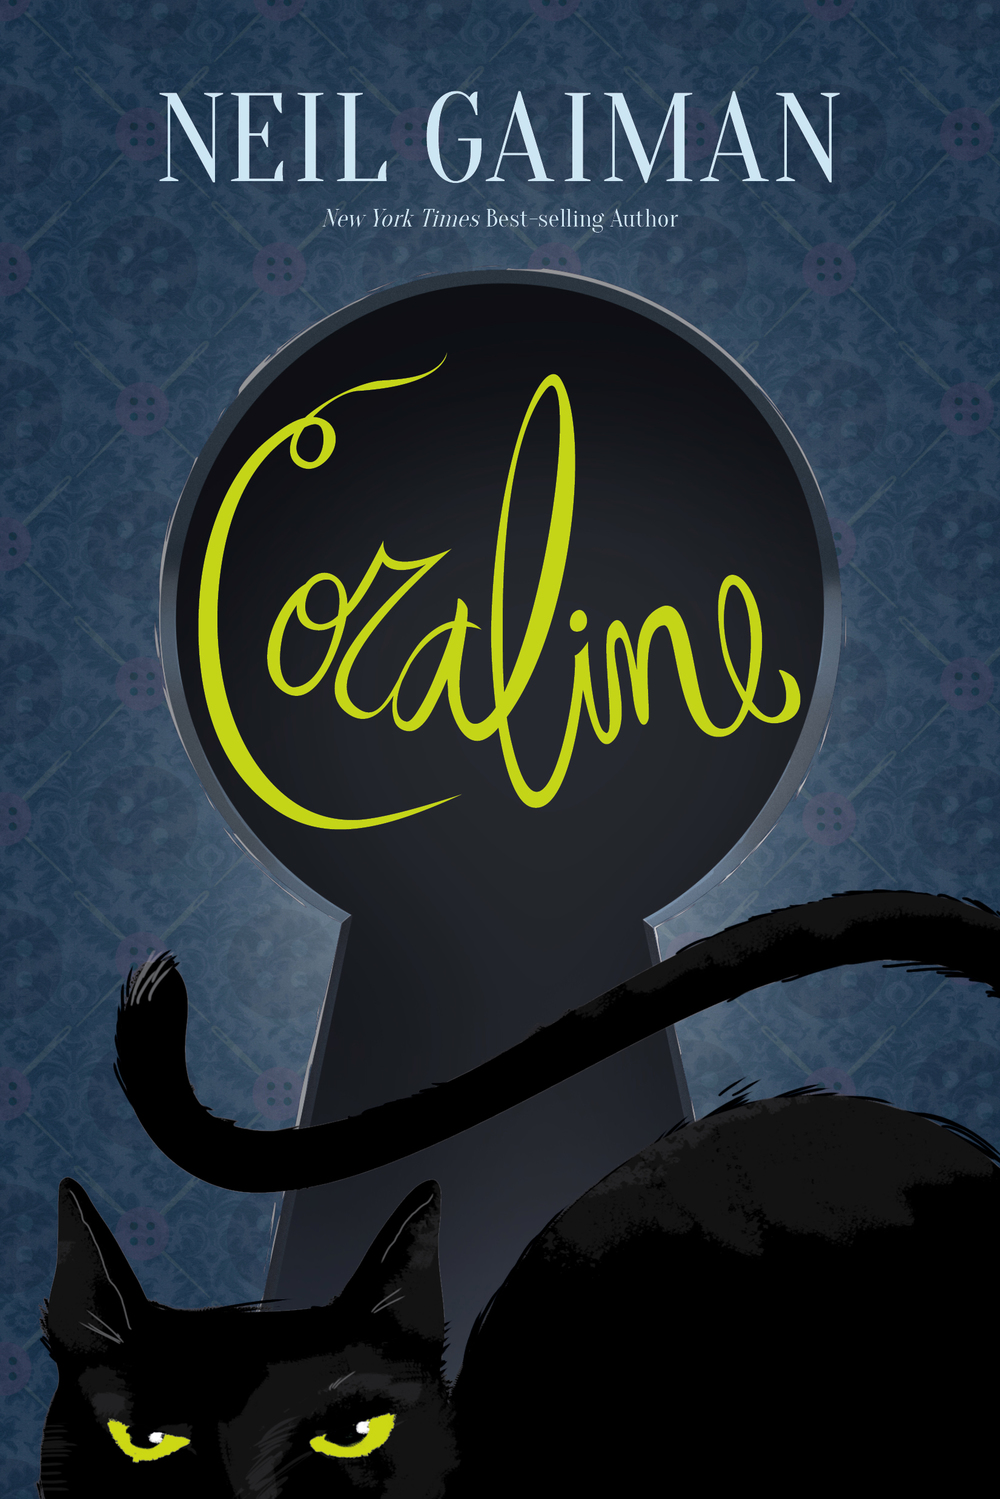 Coraline Cover Concept - Personal Project